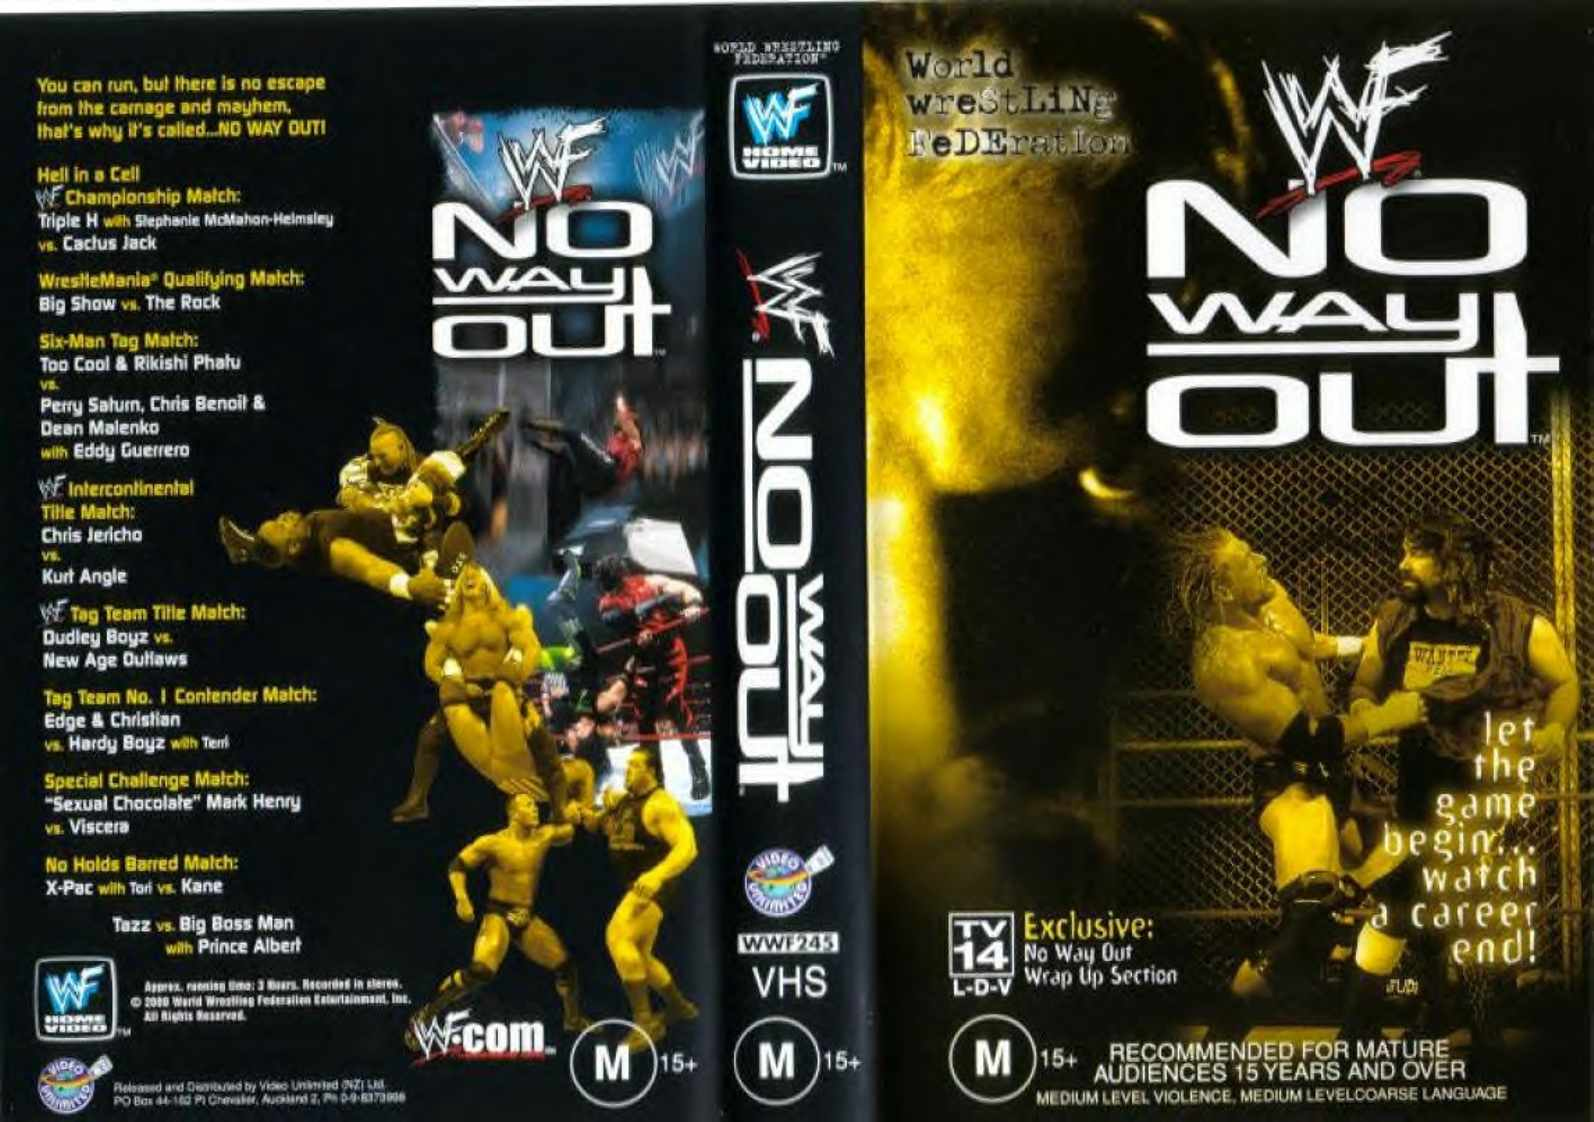 wwf_-_no_way_out00